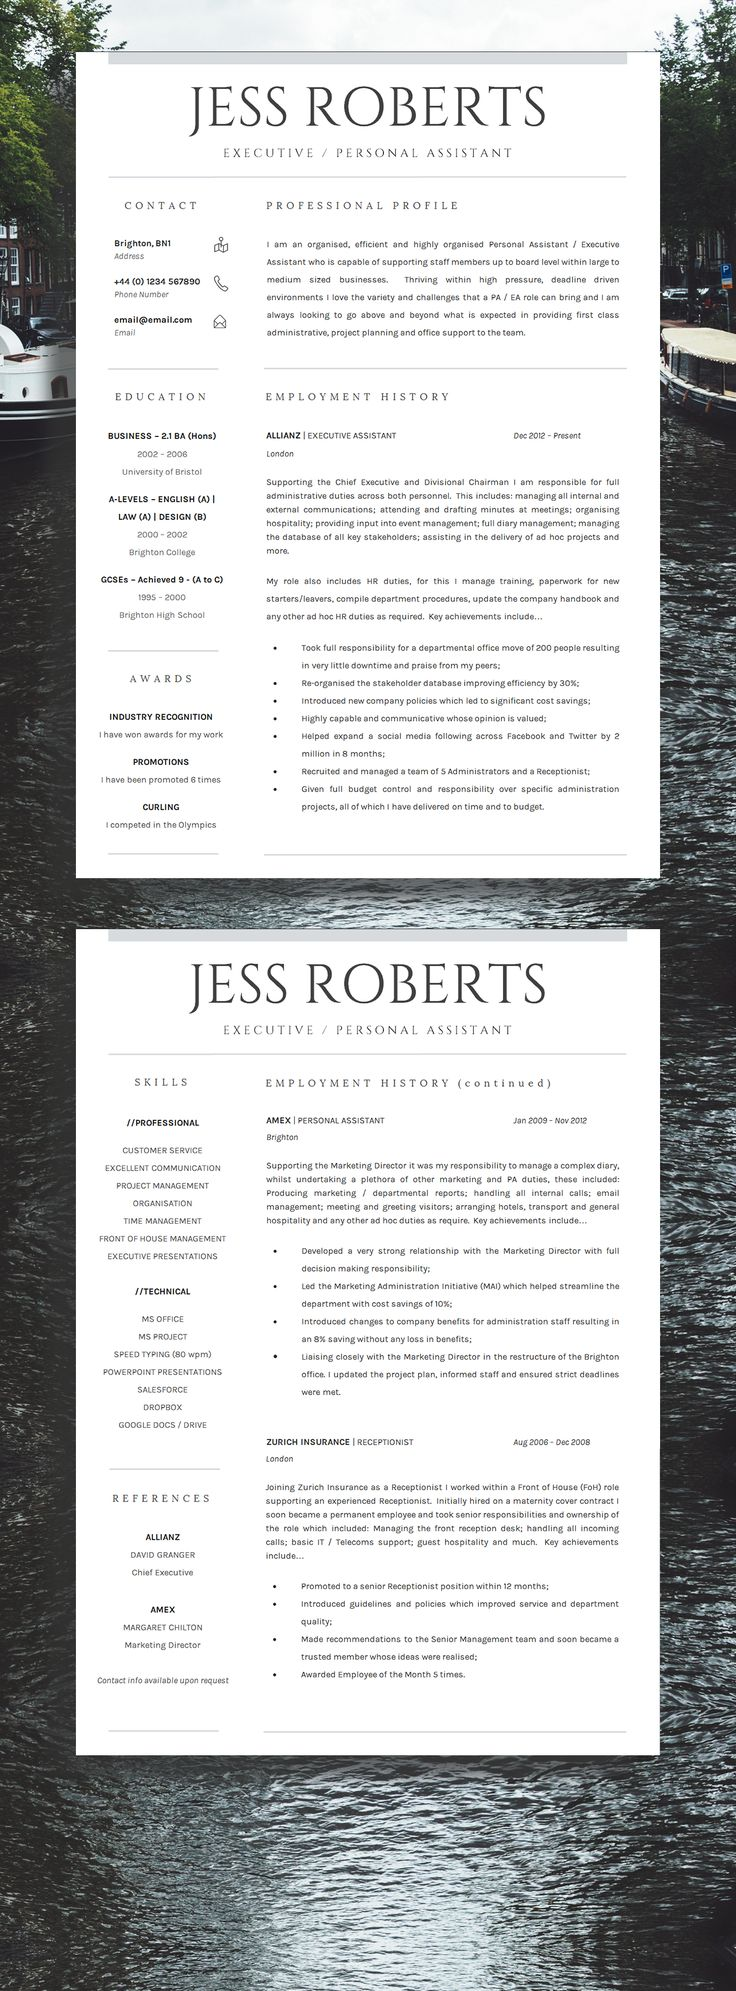 career change resume sample%0A Professional Curriculum Vitae   CV   Professional Resume Template  Get  More Interviews